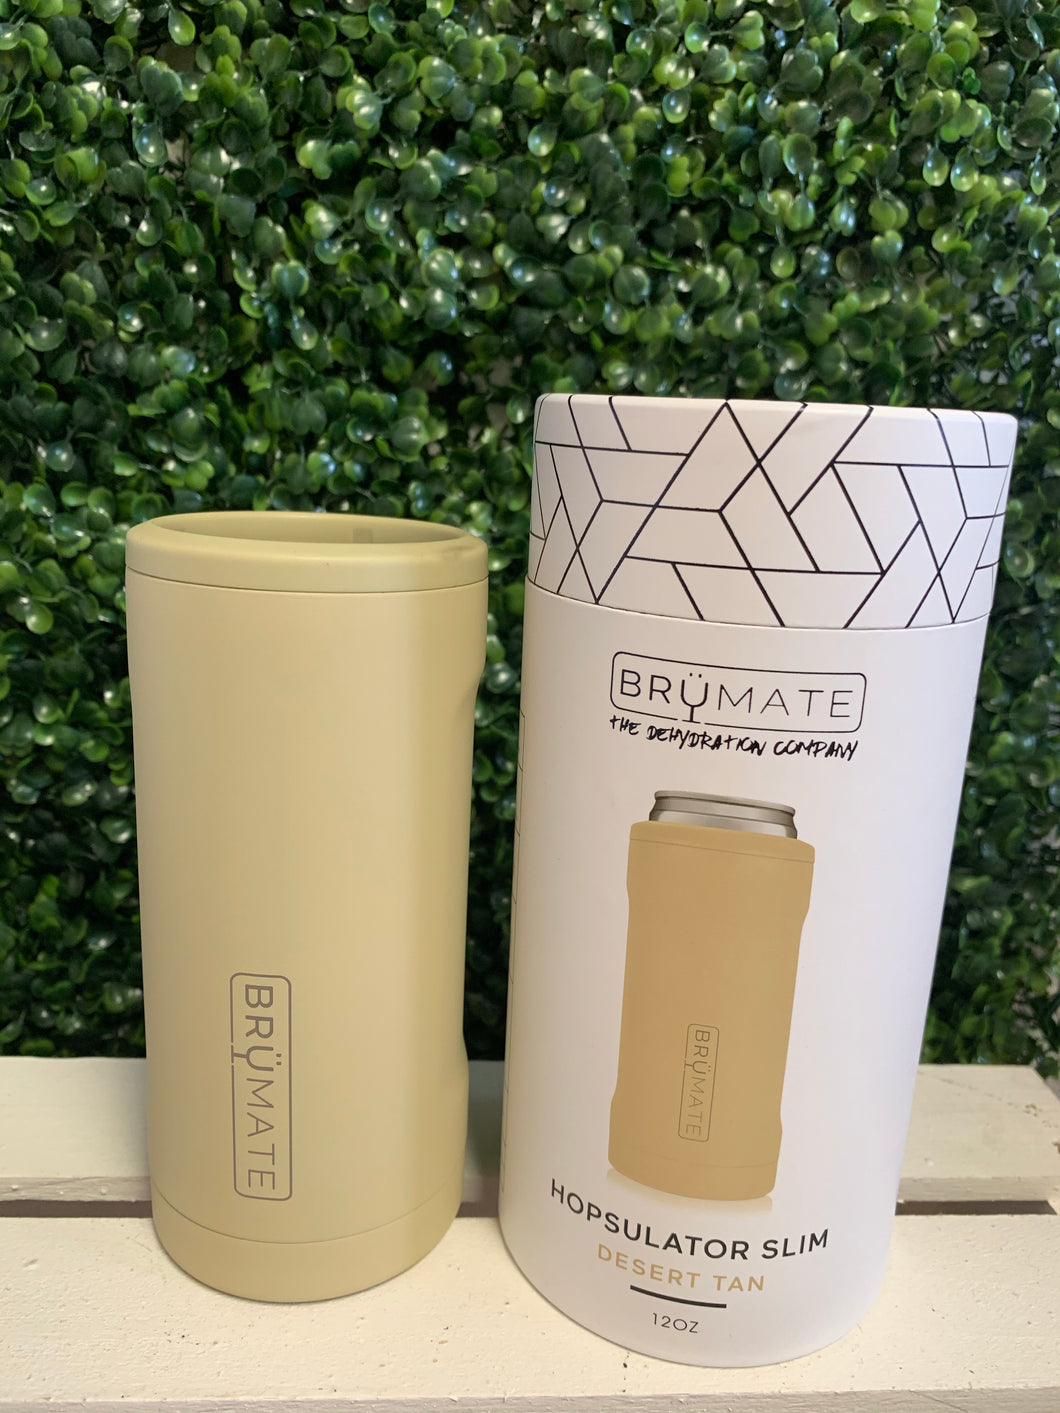 Brümate Hopsulator Slim Desert Tan 12 oz Slim Cans Only